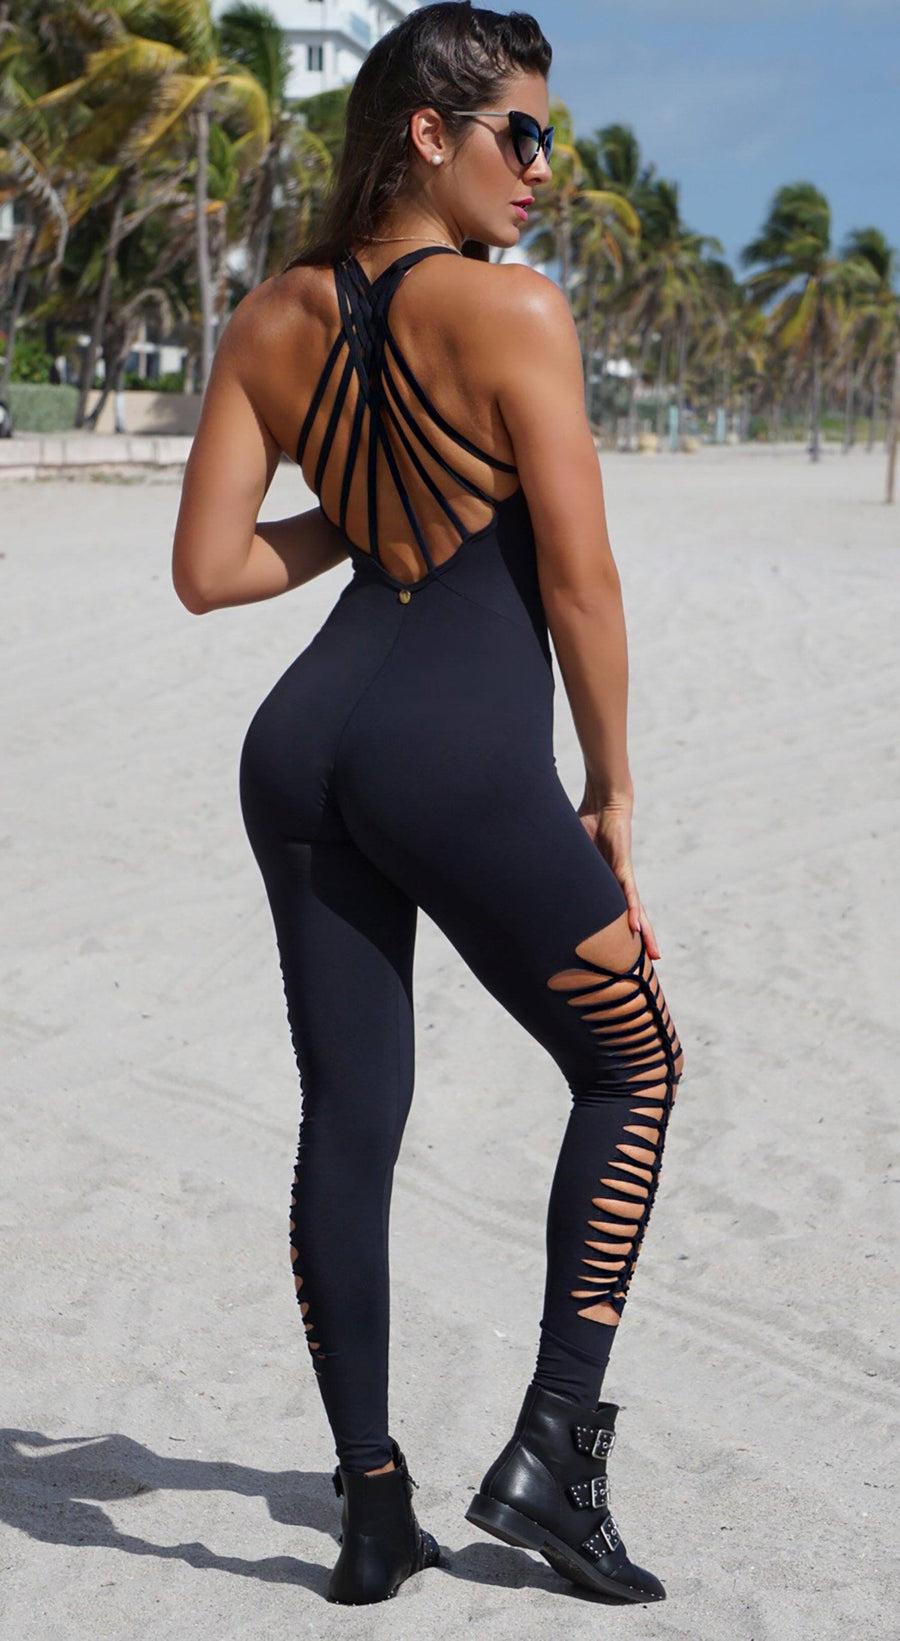 Brazilian Workout Jumpsuit - Braided  One piece Black